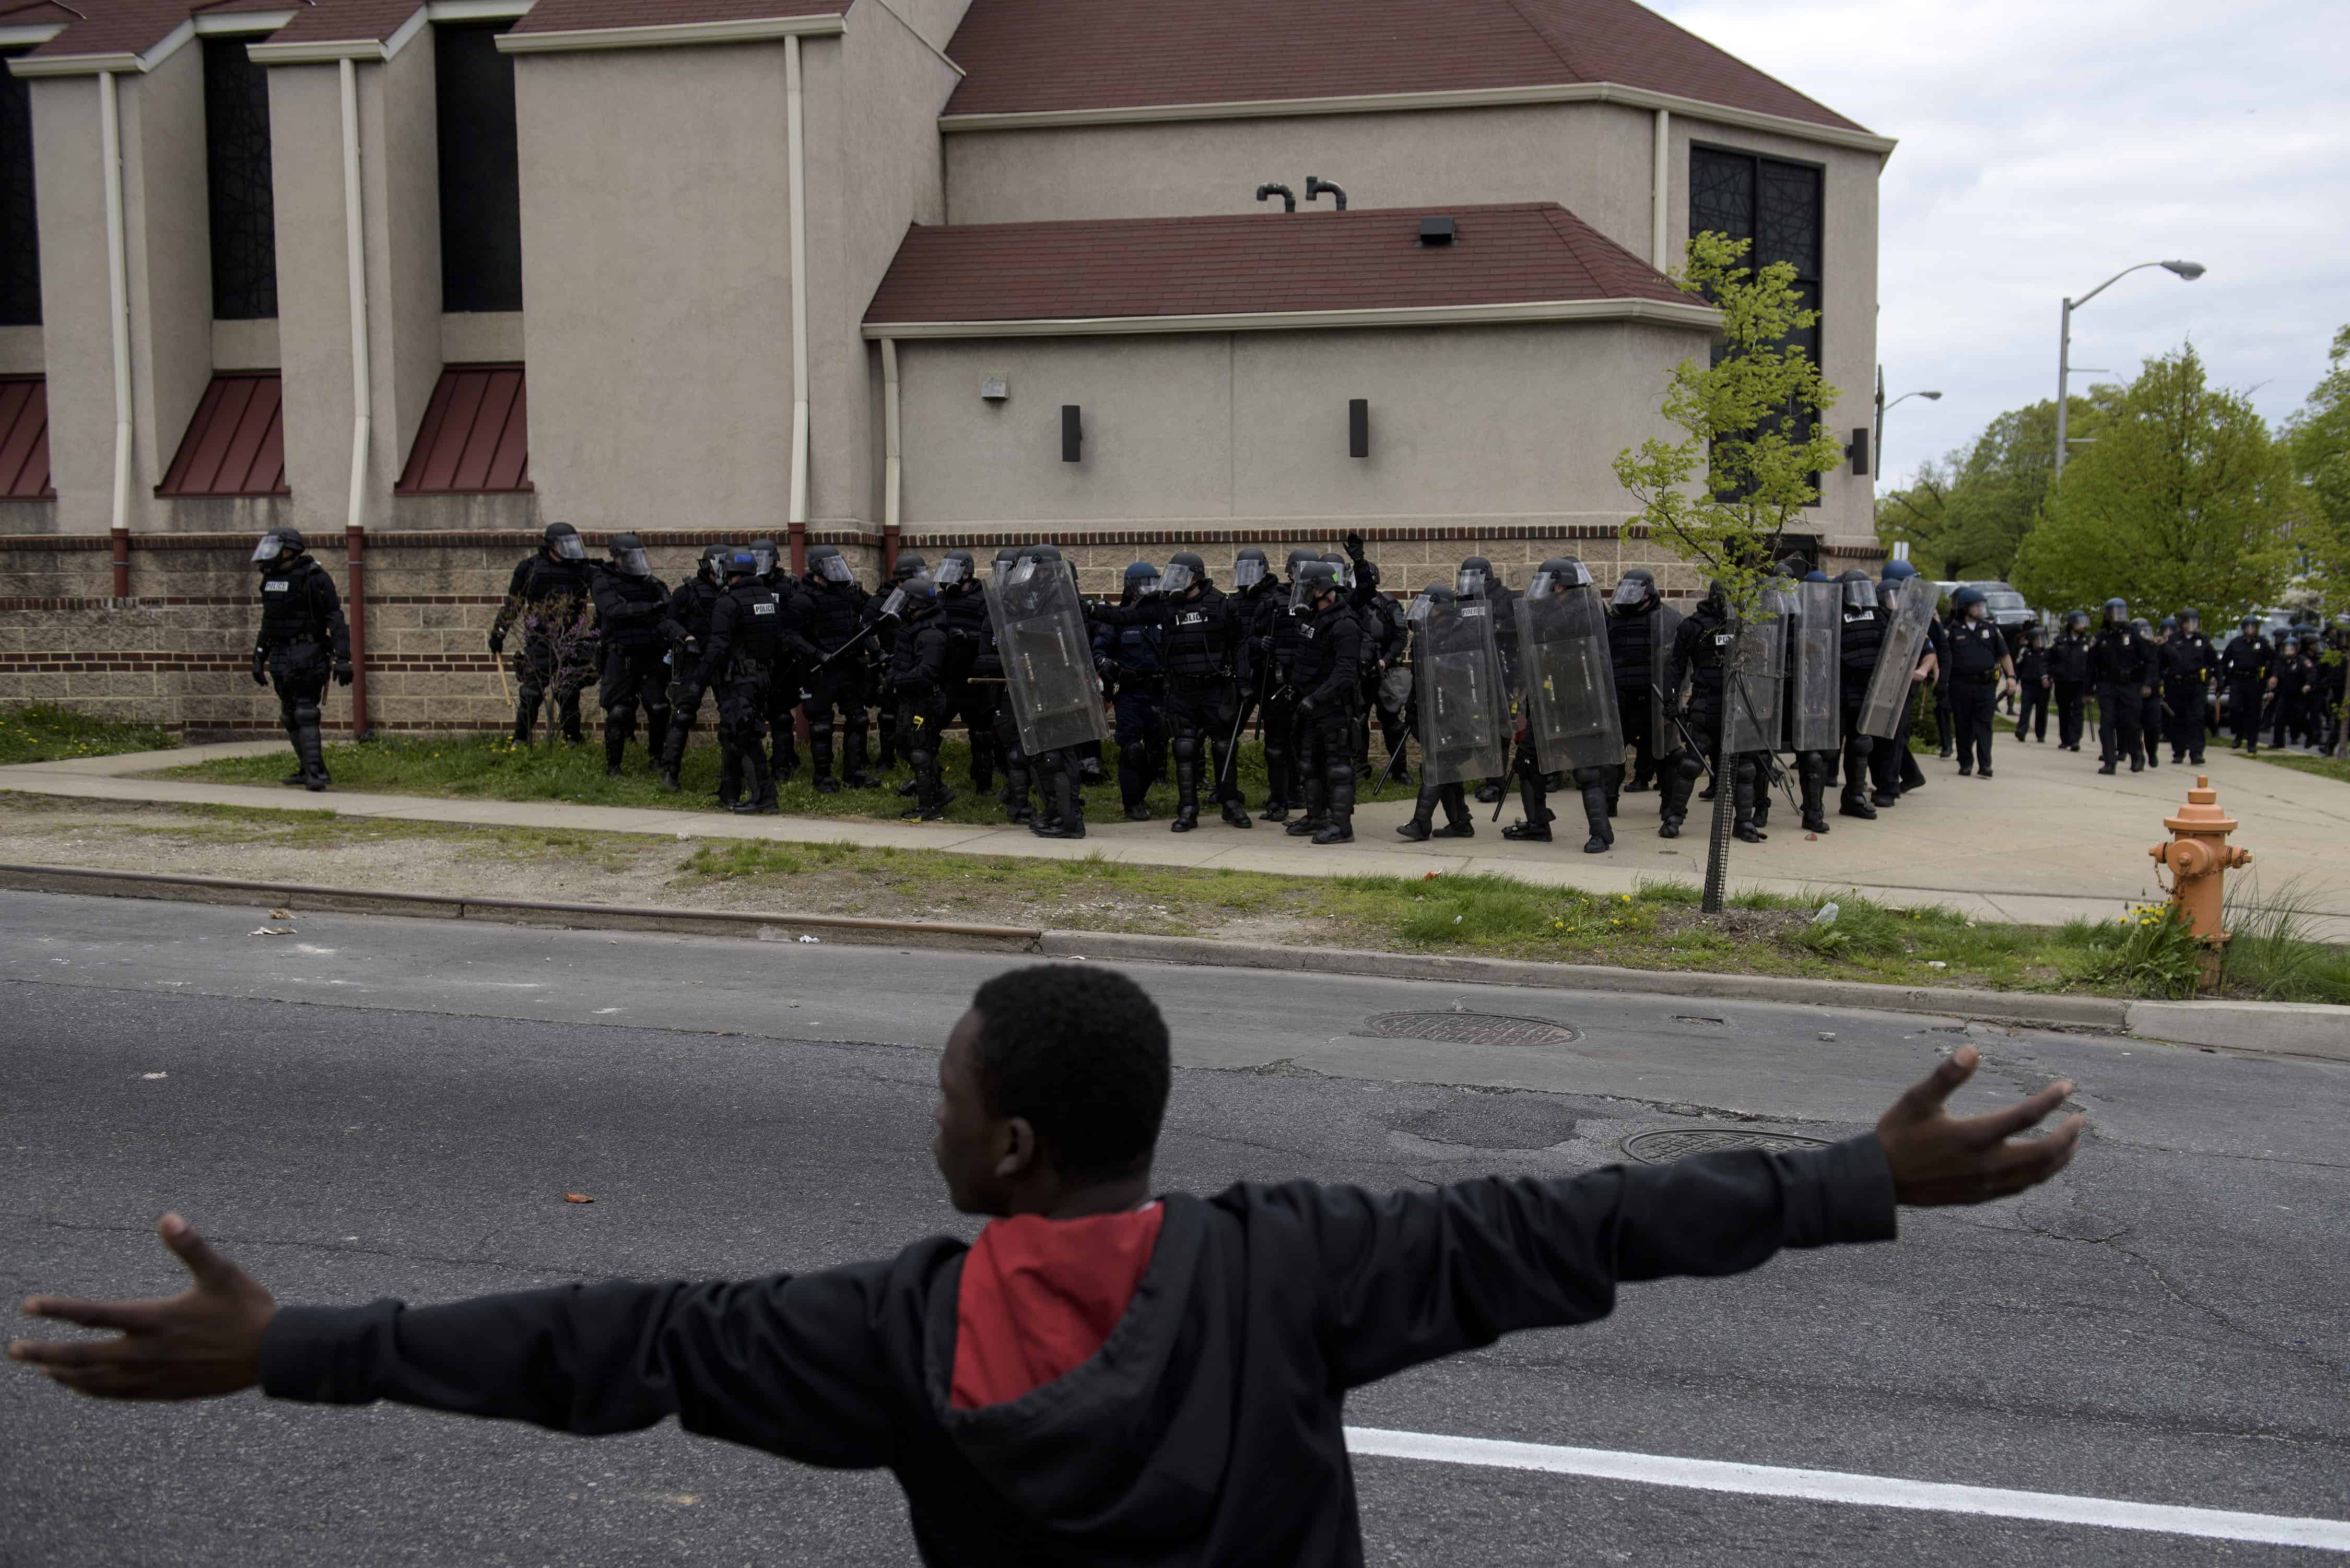 A protester gestures before riot police on April 27, 2015 in Baltimore, Maryland.